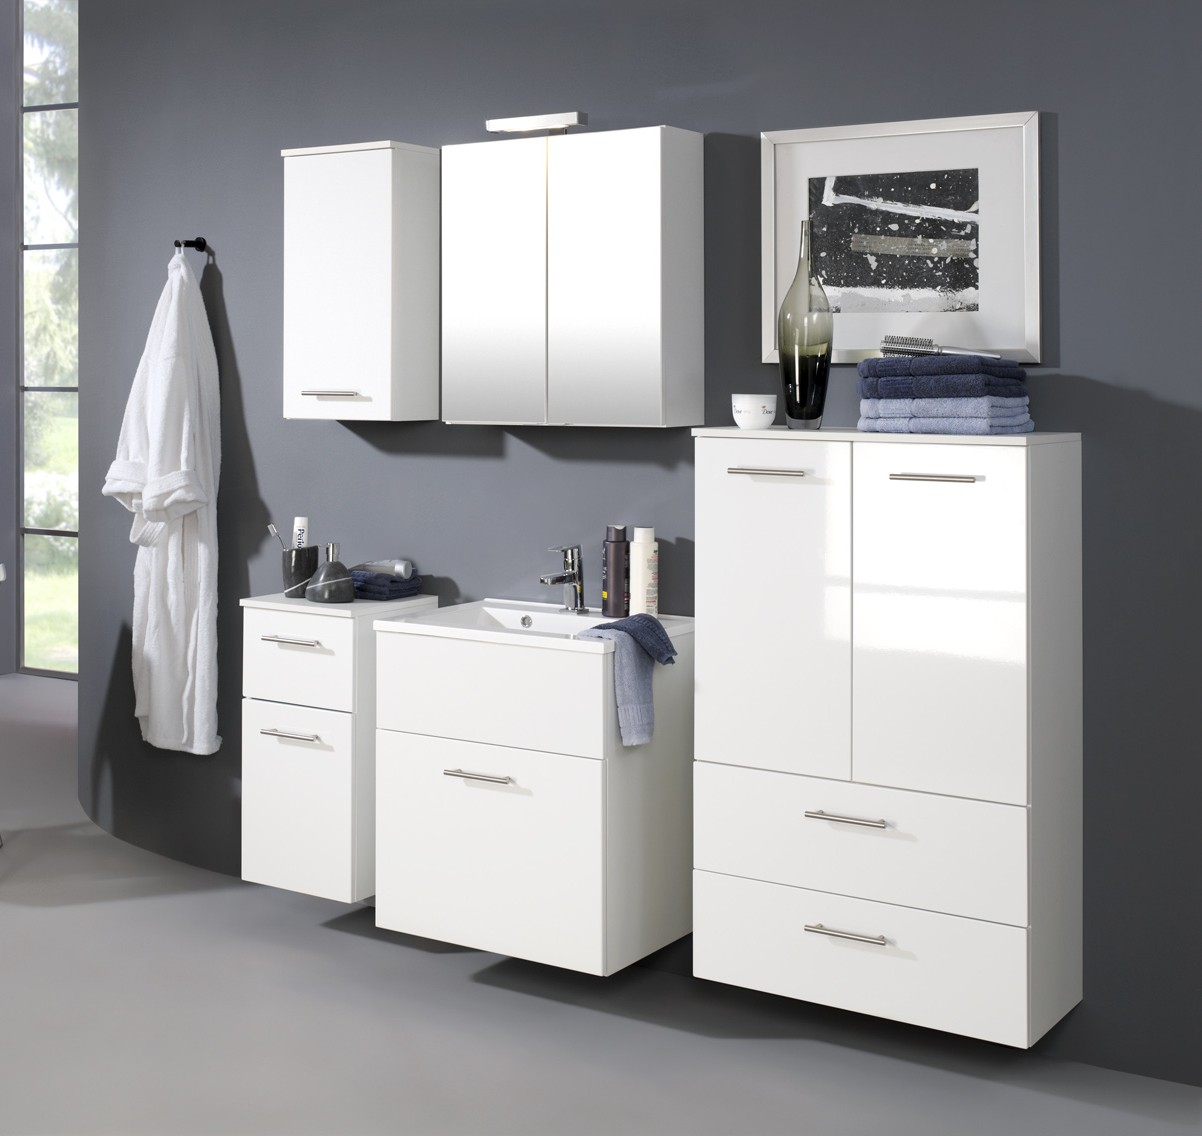 bad h ngeschrank blanco 1 t rig 35 cm breit hochglanz wei bad bad h ngeschr nke. Black Bedroom Furniture Sets. Home Design Ideas